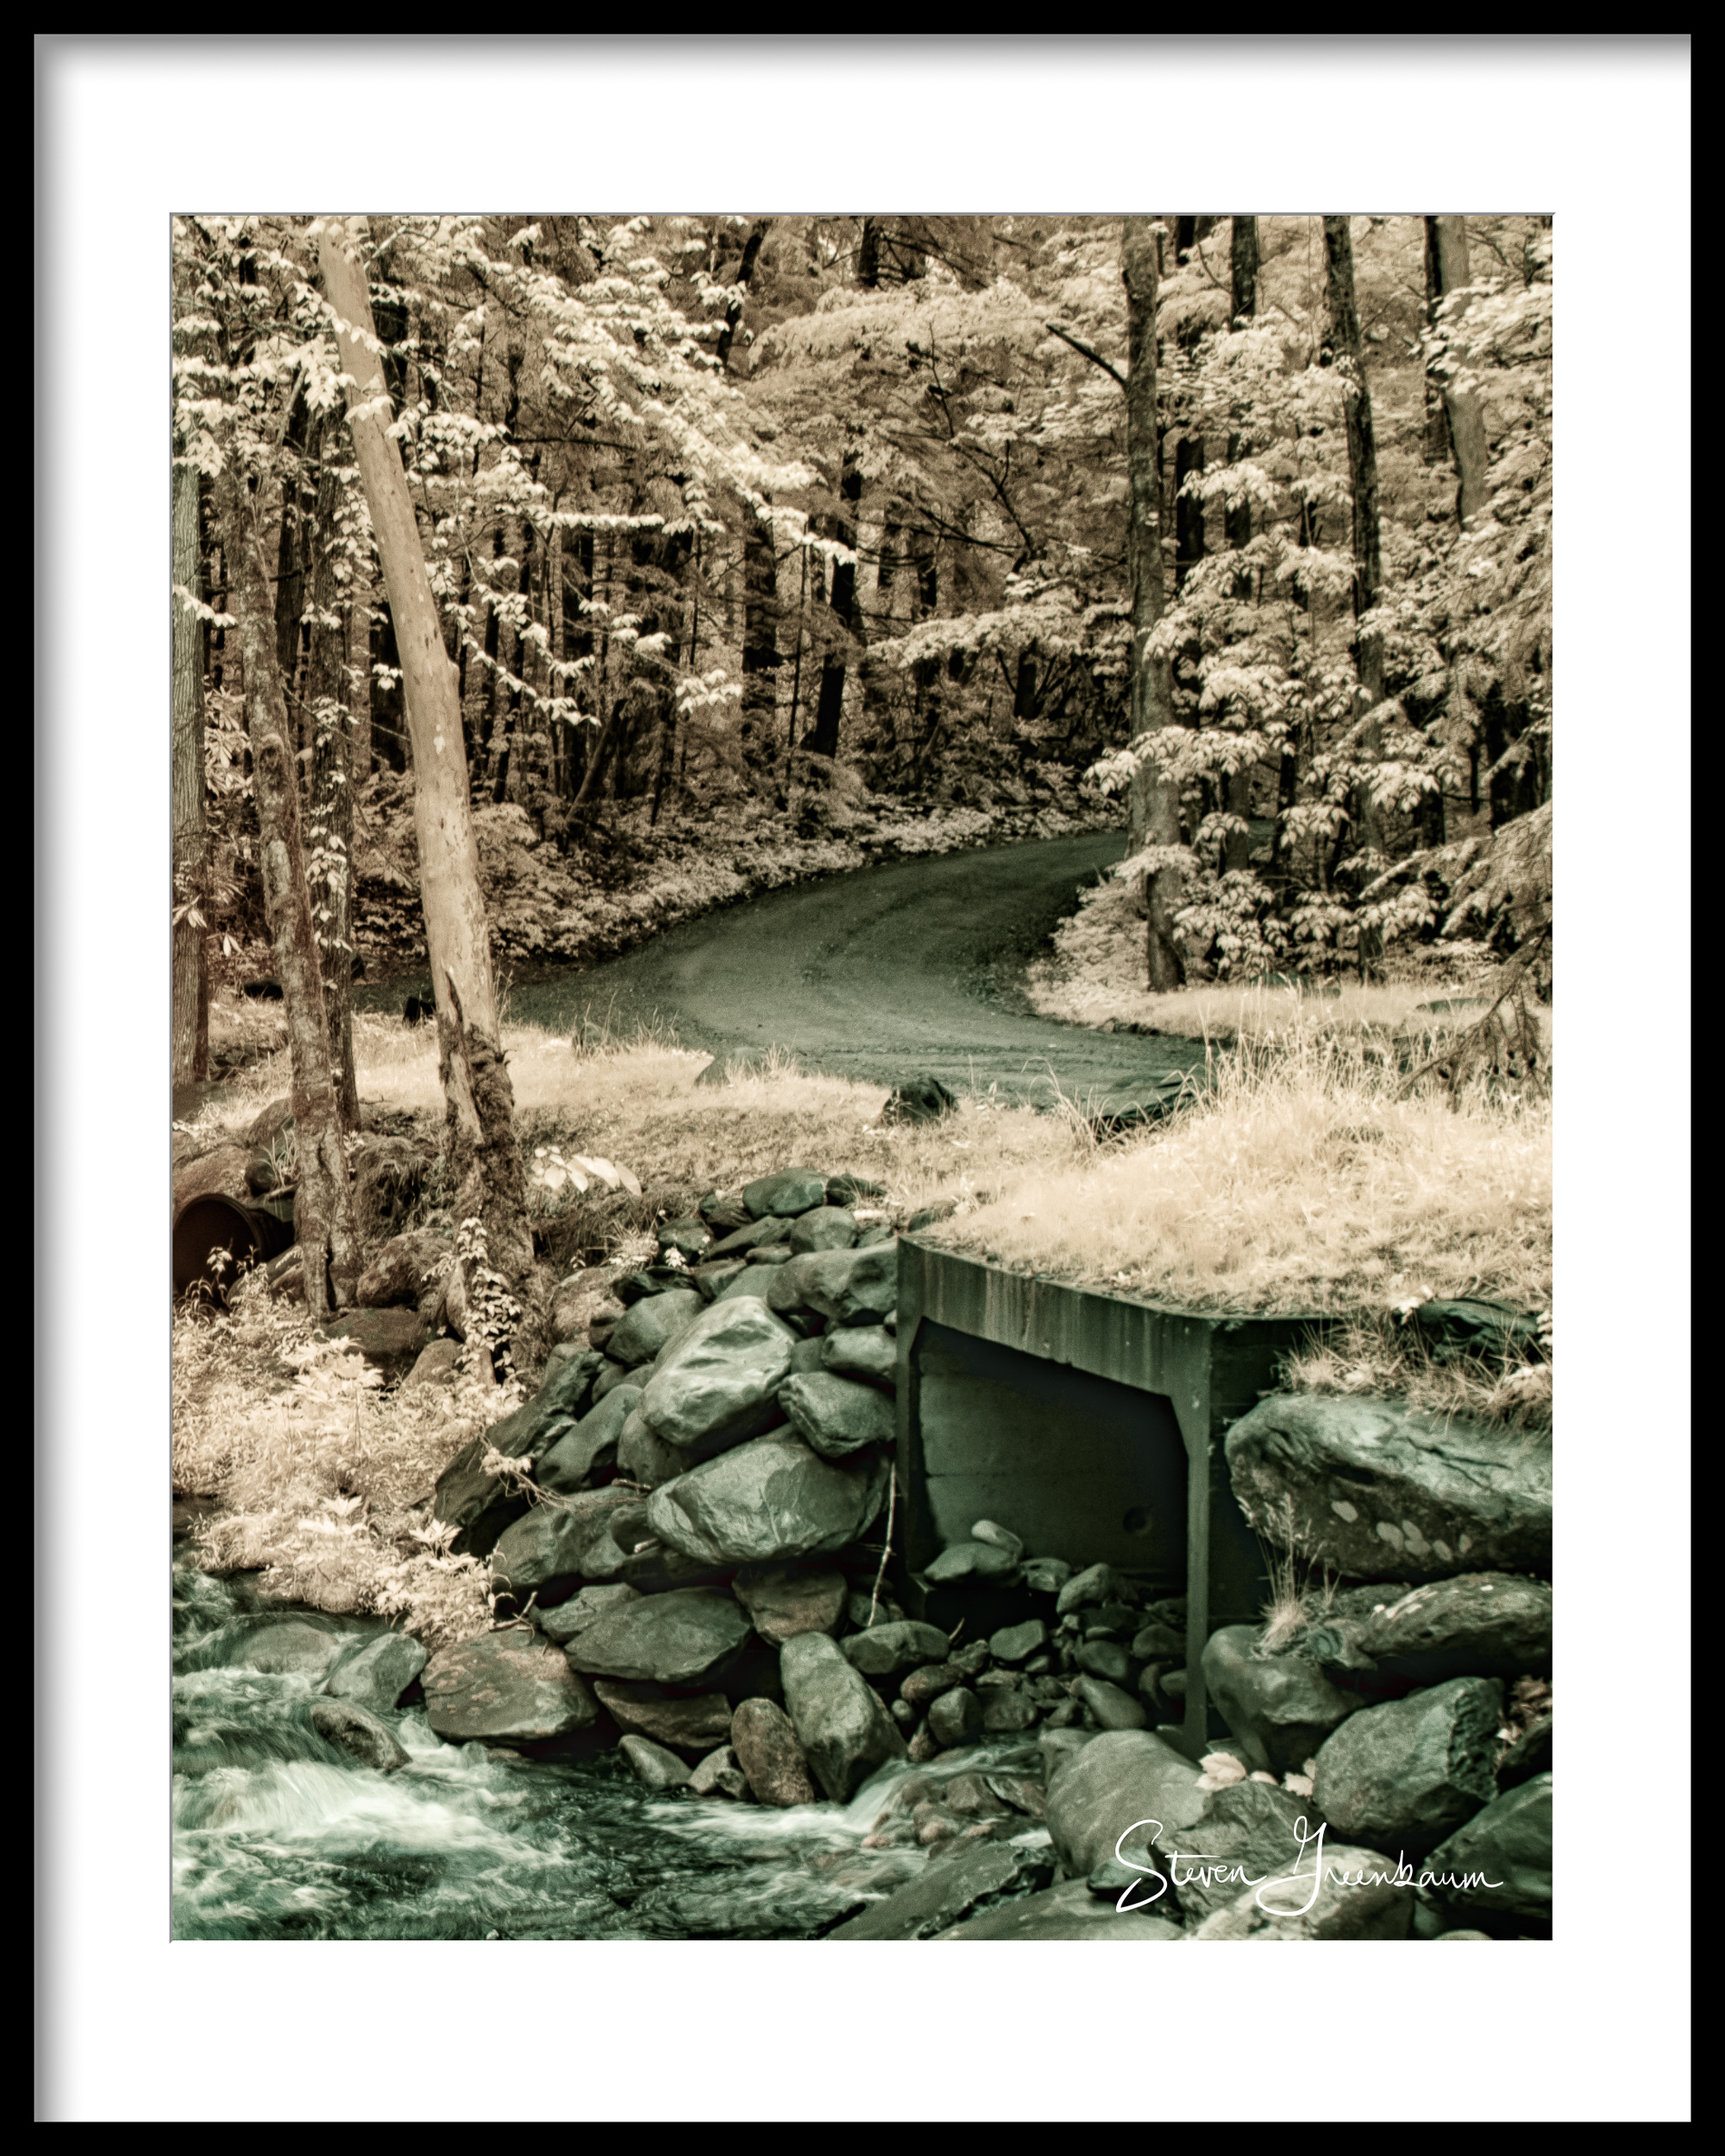 Greenbrier Cove, Smokies, 2016